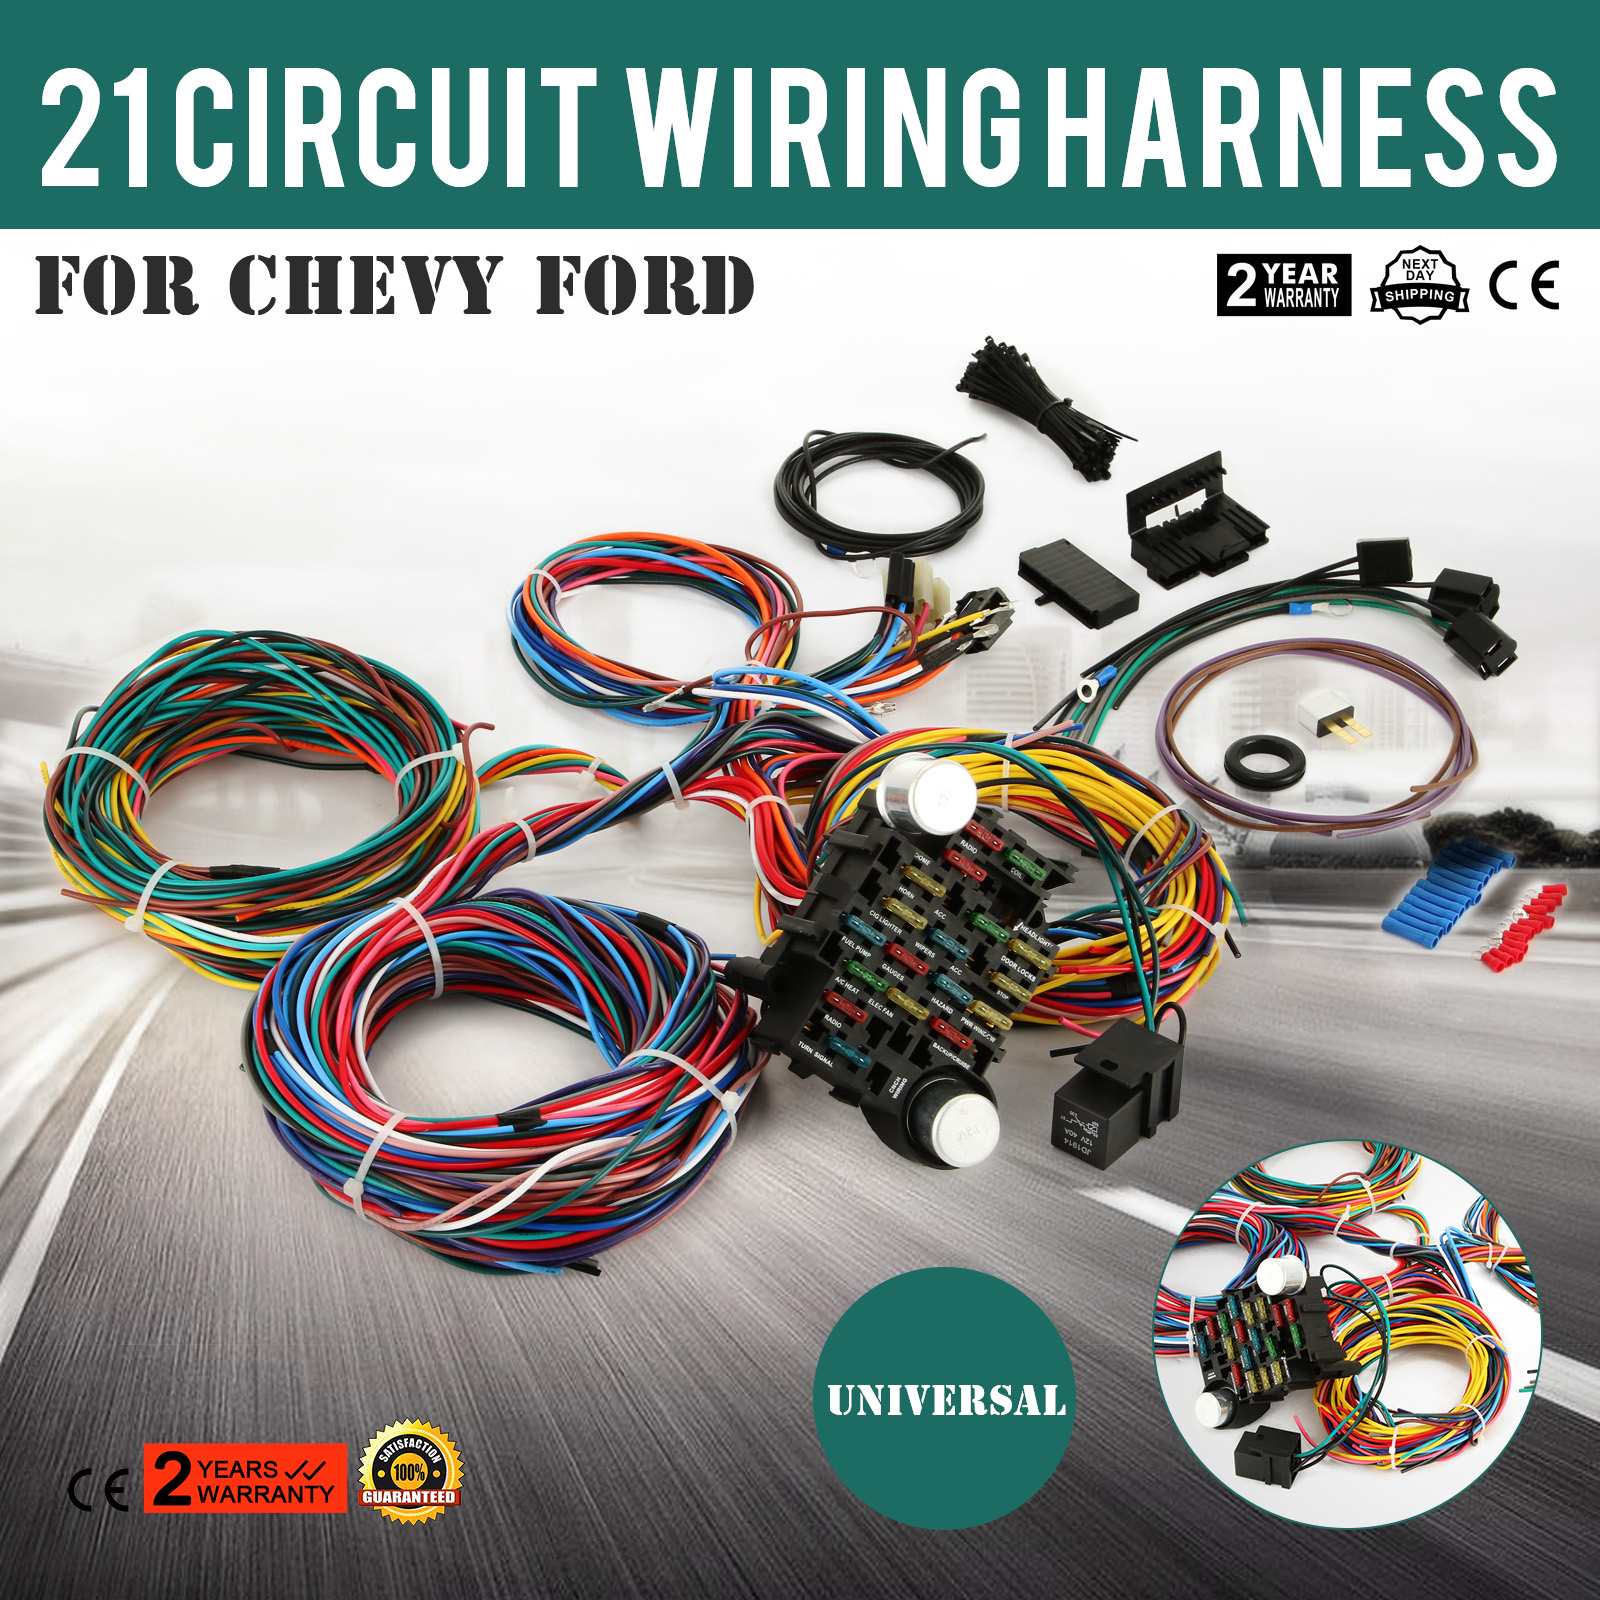 m132 1.1 21 circuit wiring harness chevy universal wires ford mopar ebay wiring harness chevy colorado at bayanpartner.co